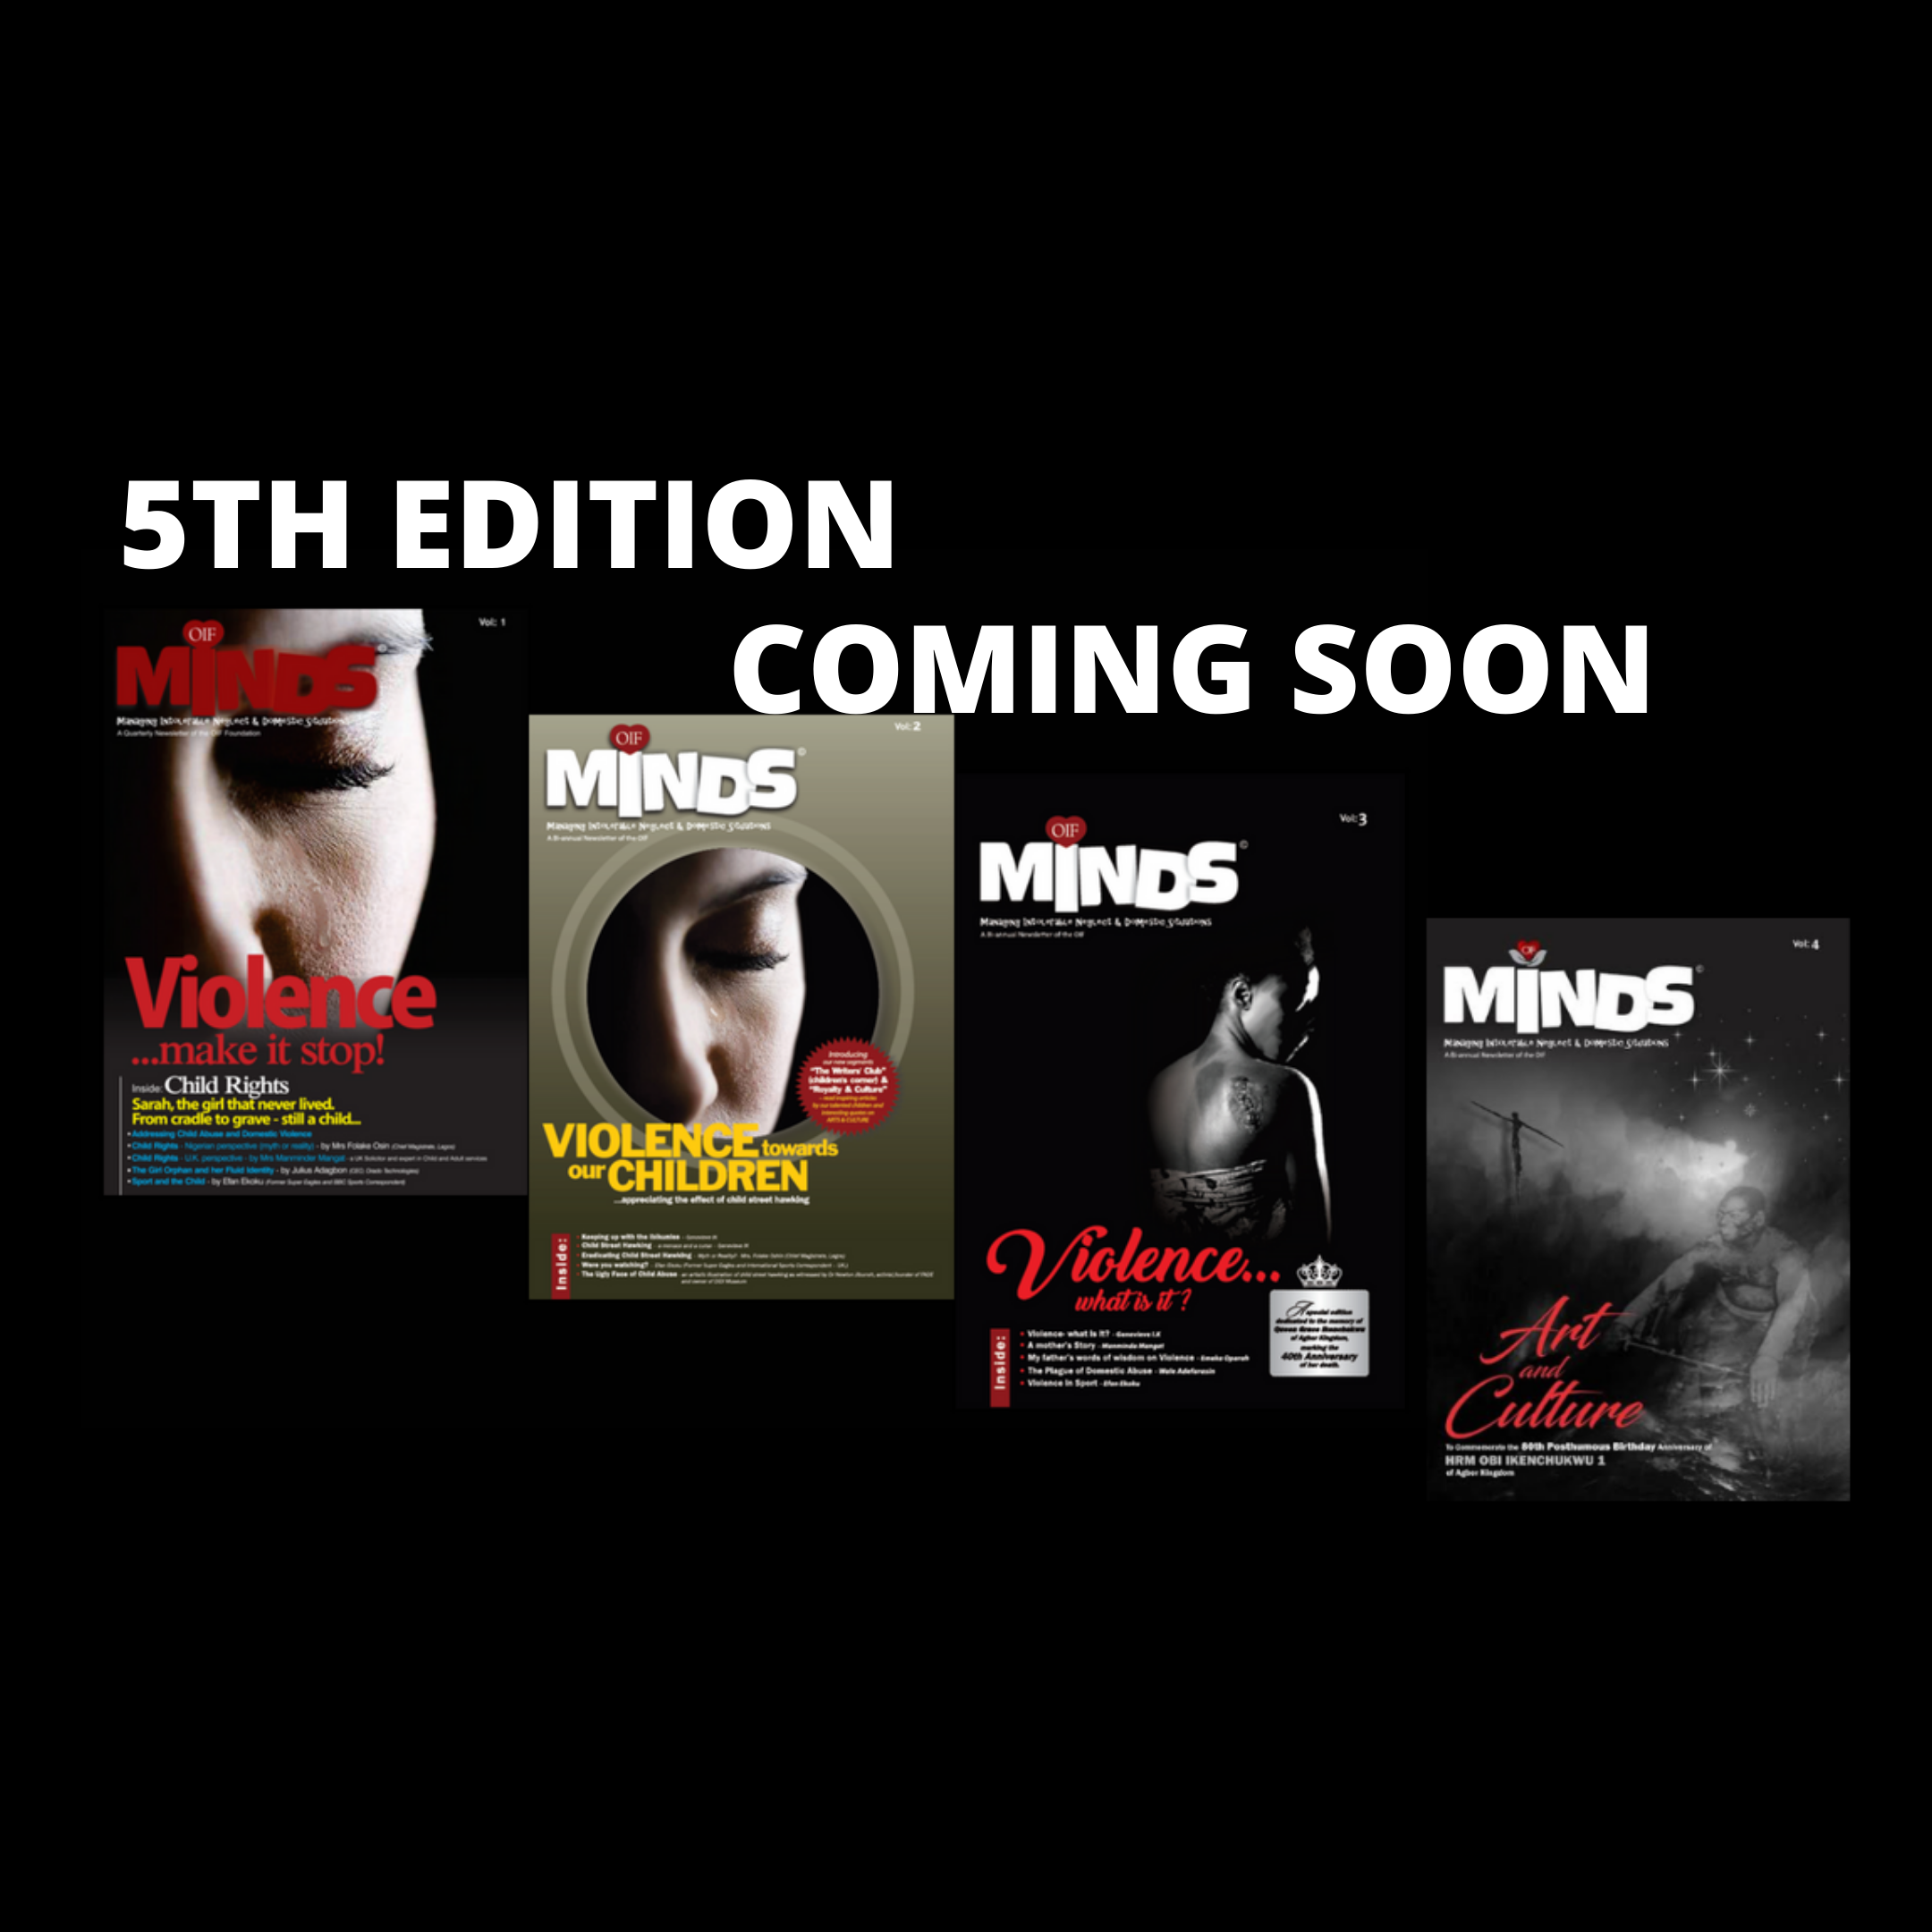 5th Edition MINDS